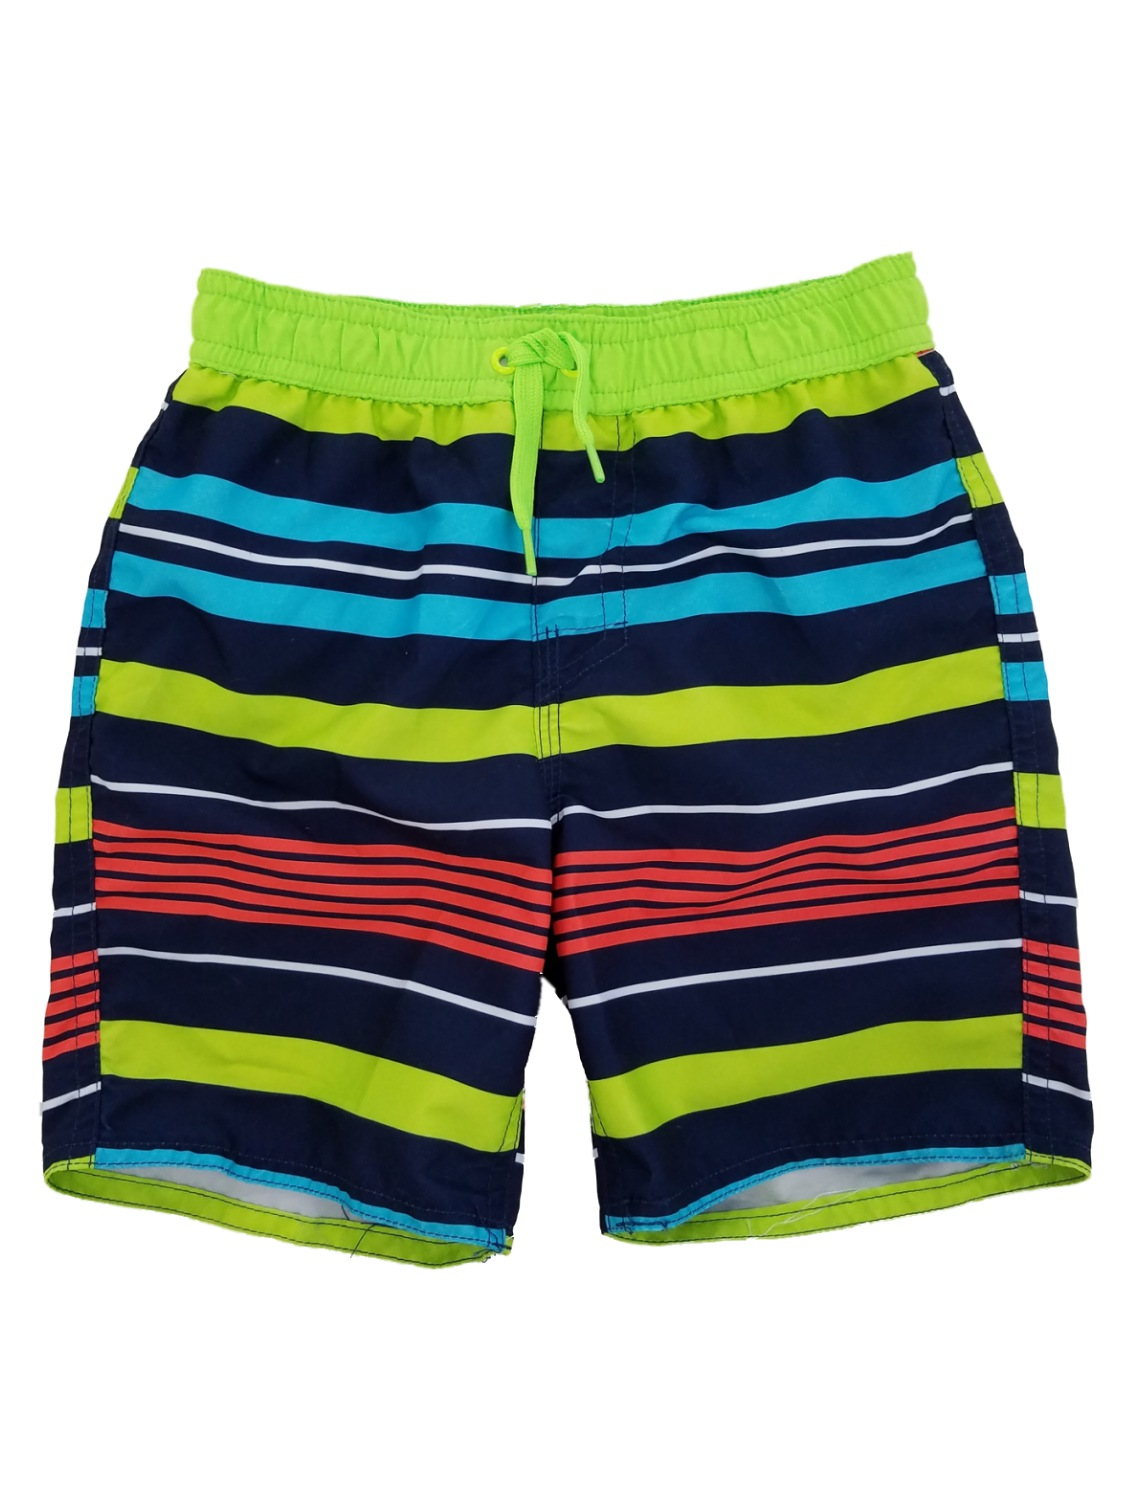 Boys swim trunks shorts Quad Seven NEW 12months 18months red blue lime turquoise